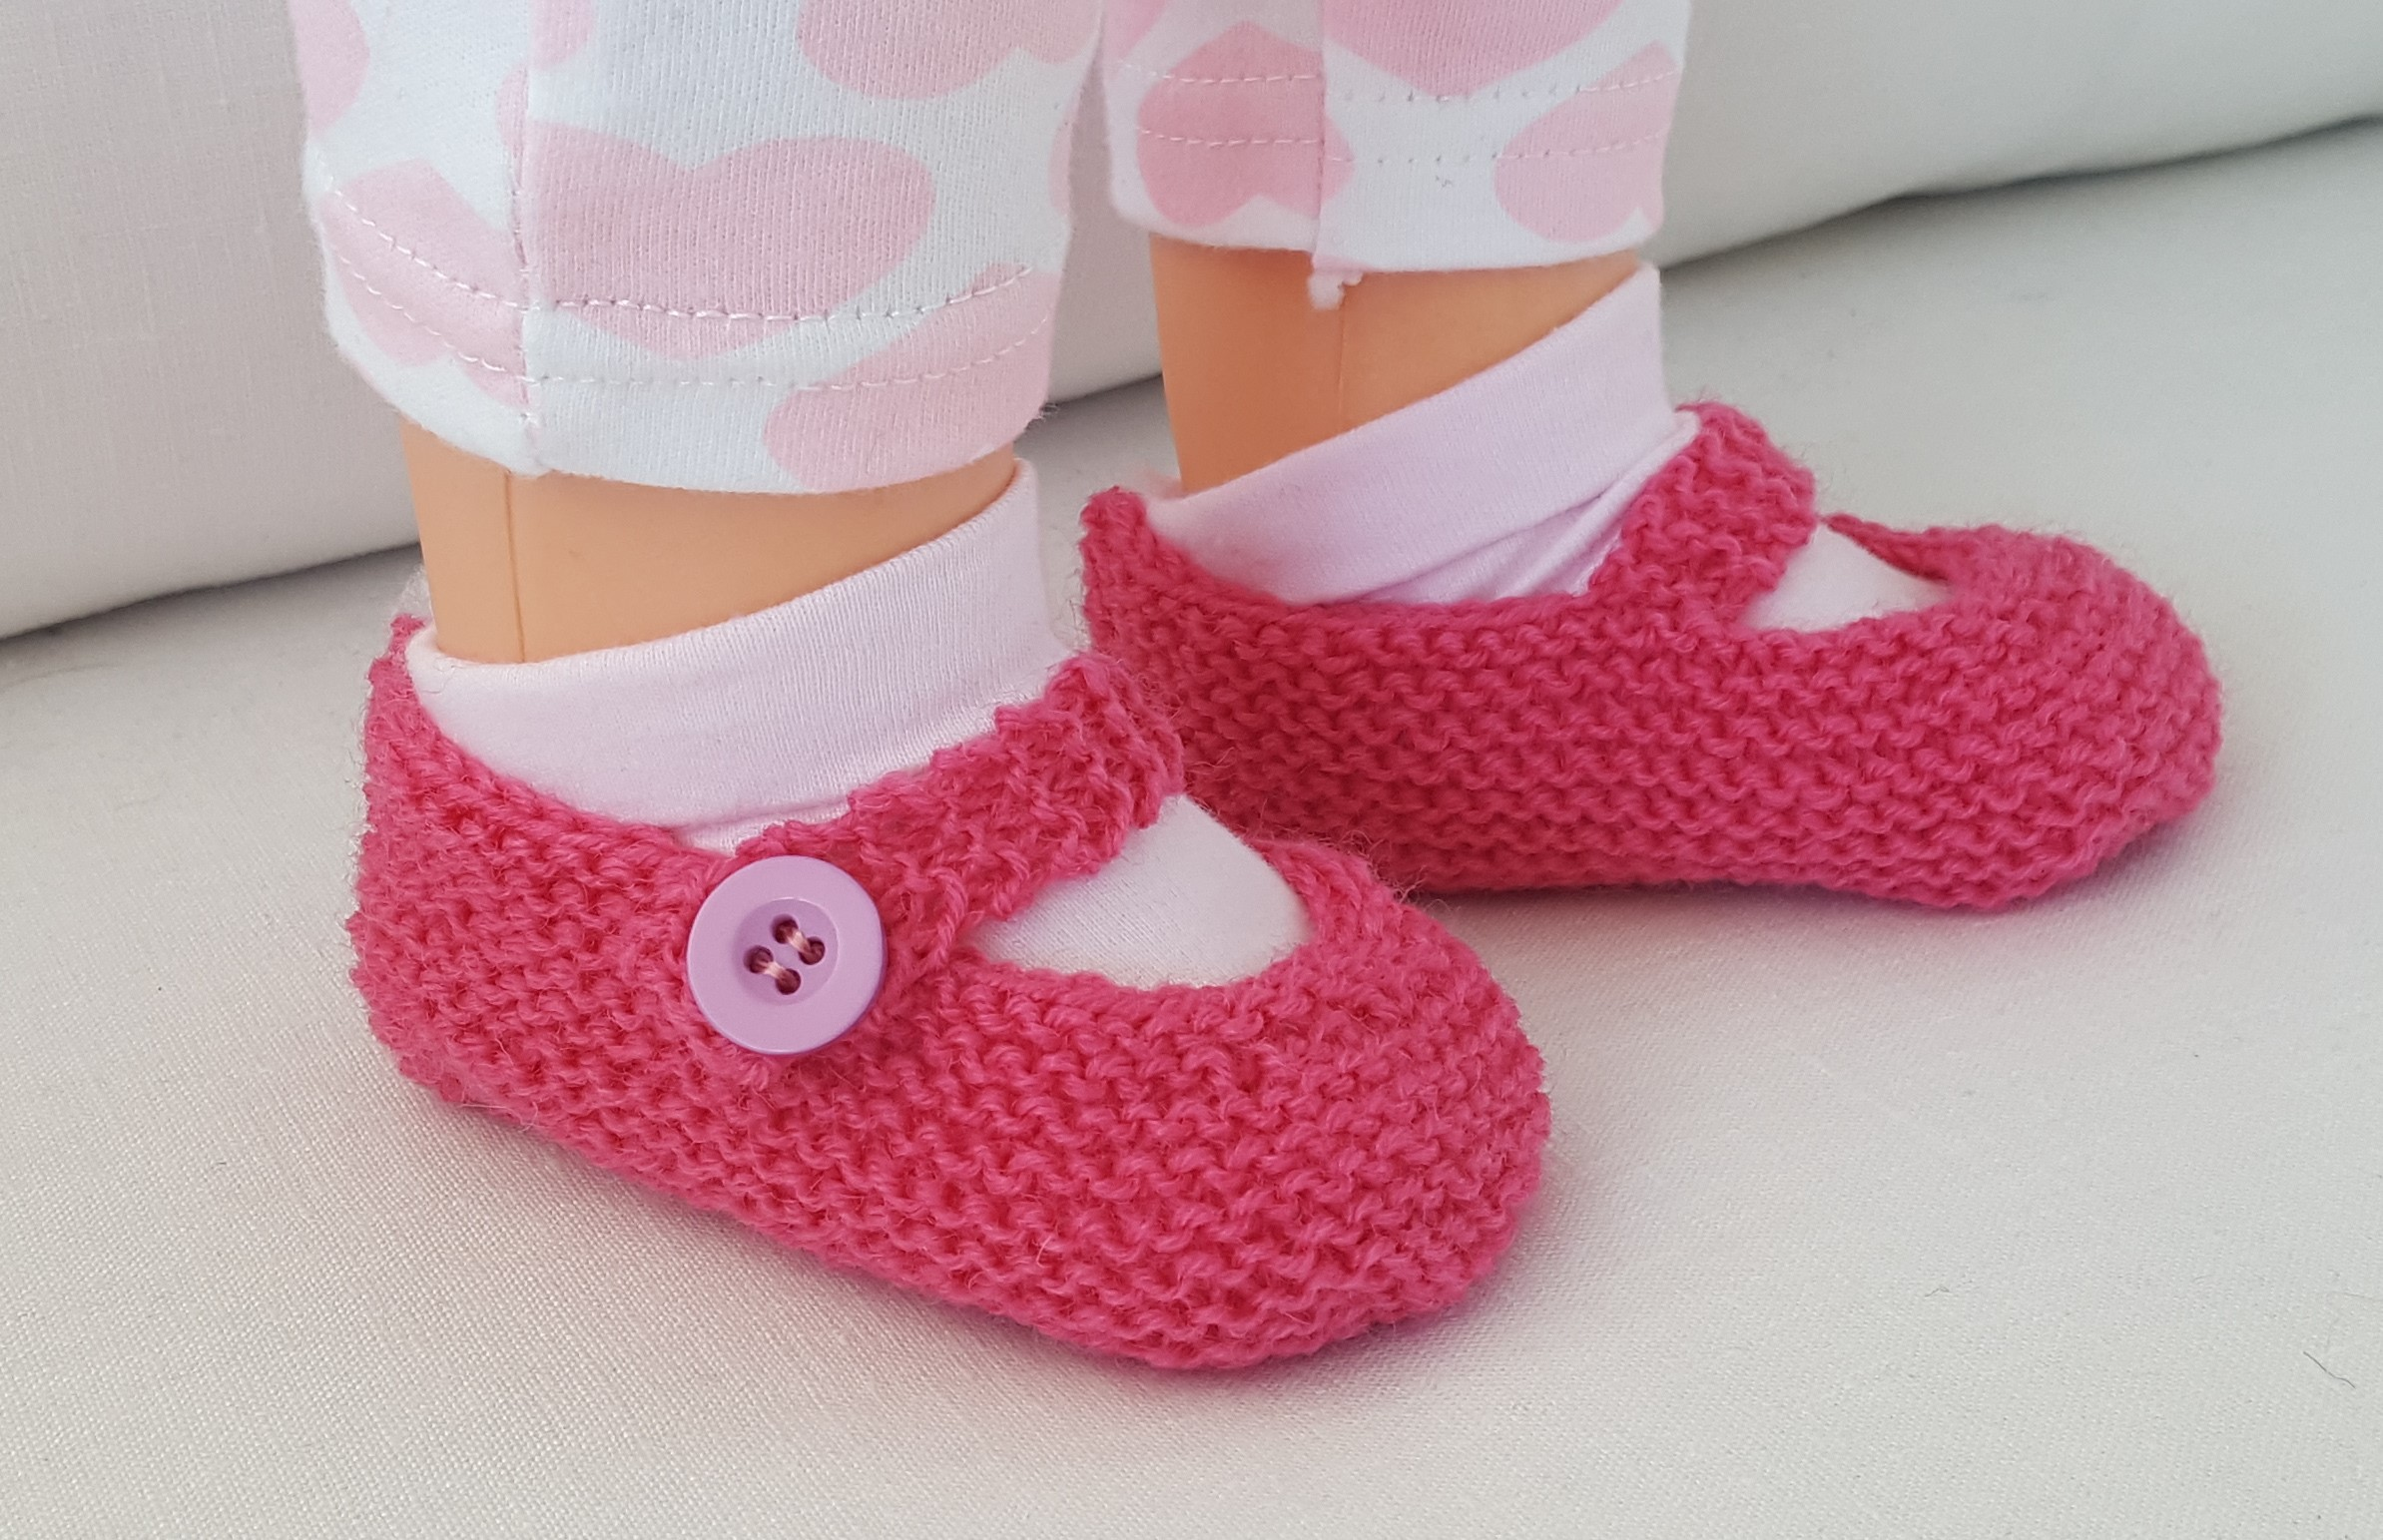 f58b5183e Knitting Patterns Online - Knitting Patterns For Baby Shoes - Katrina